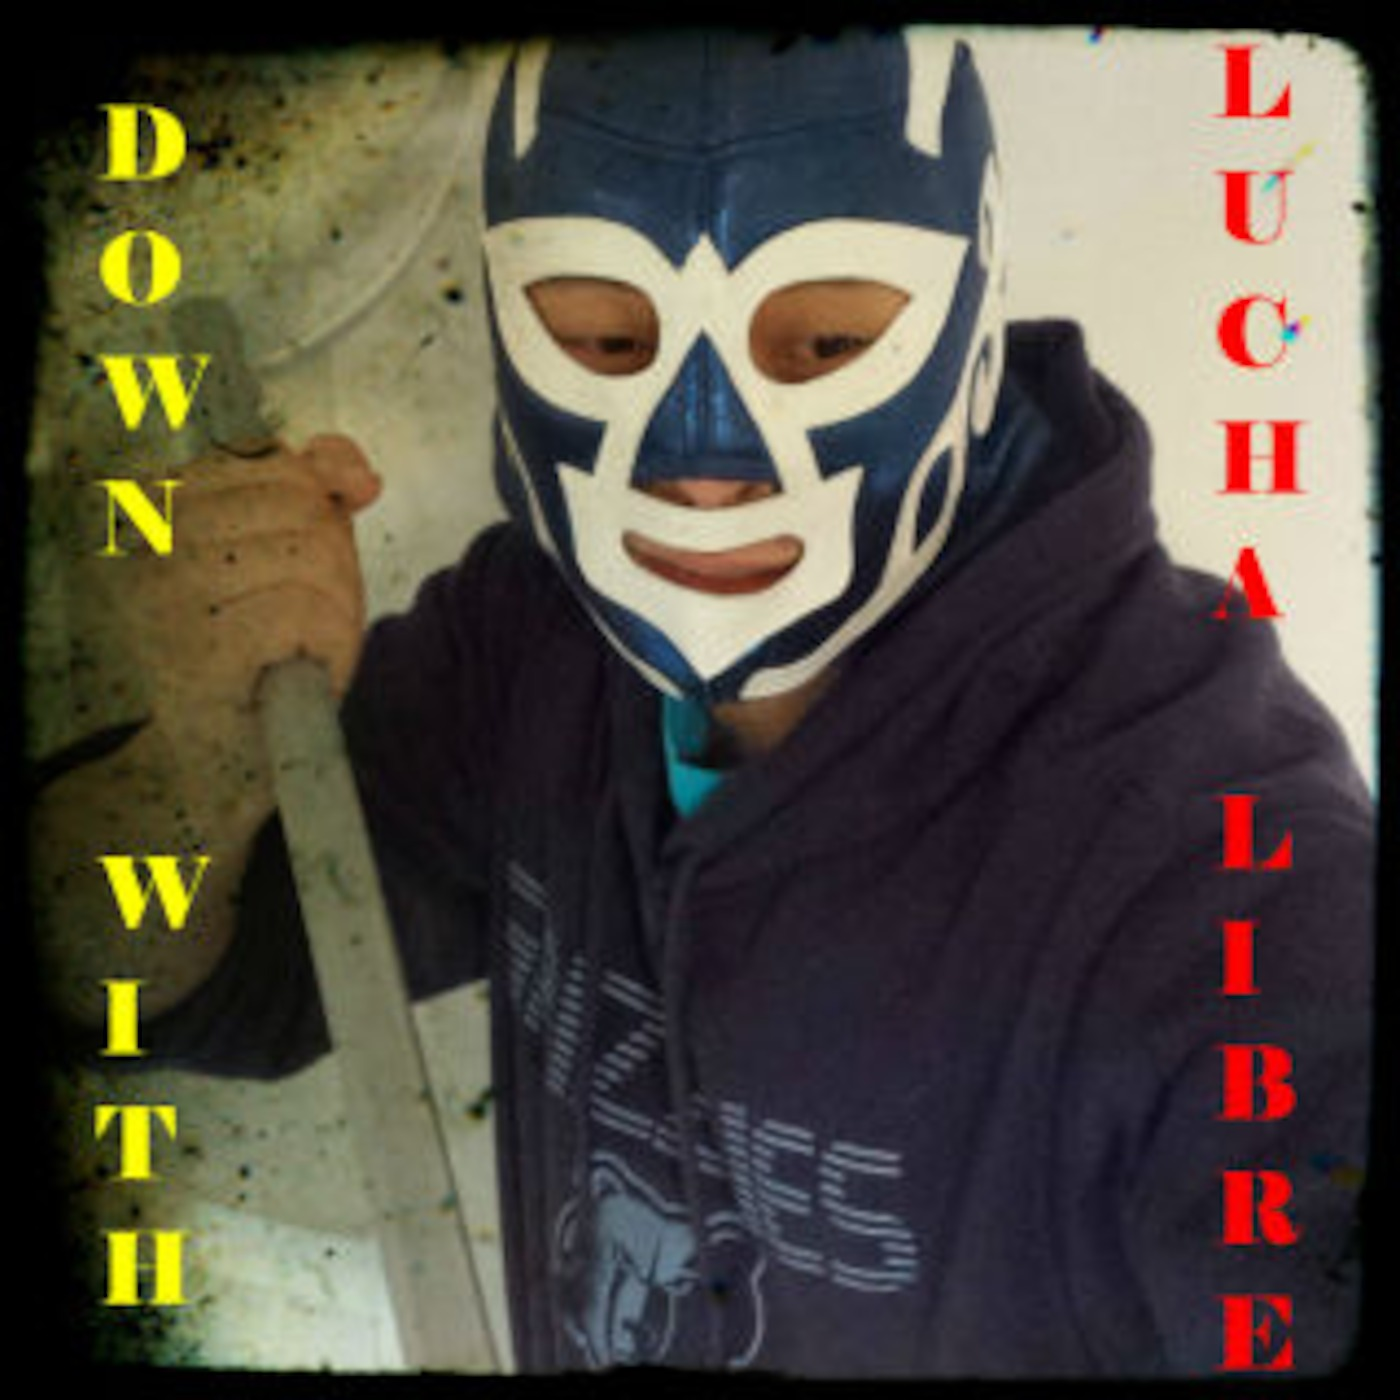 Down With Lucha Libre: JEW Audio Series' Podcast